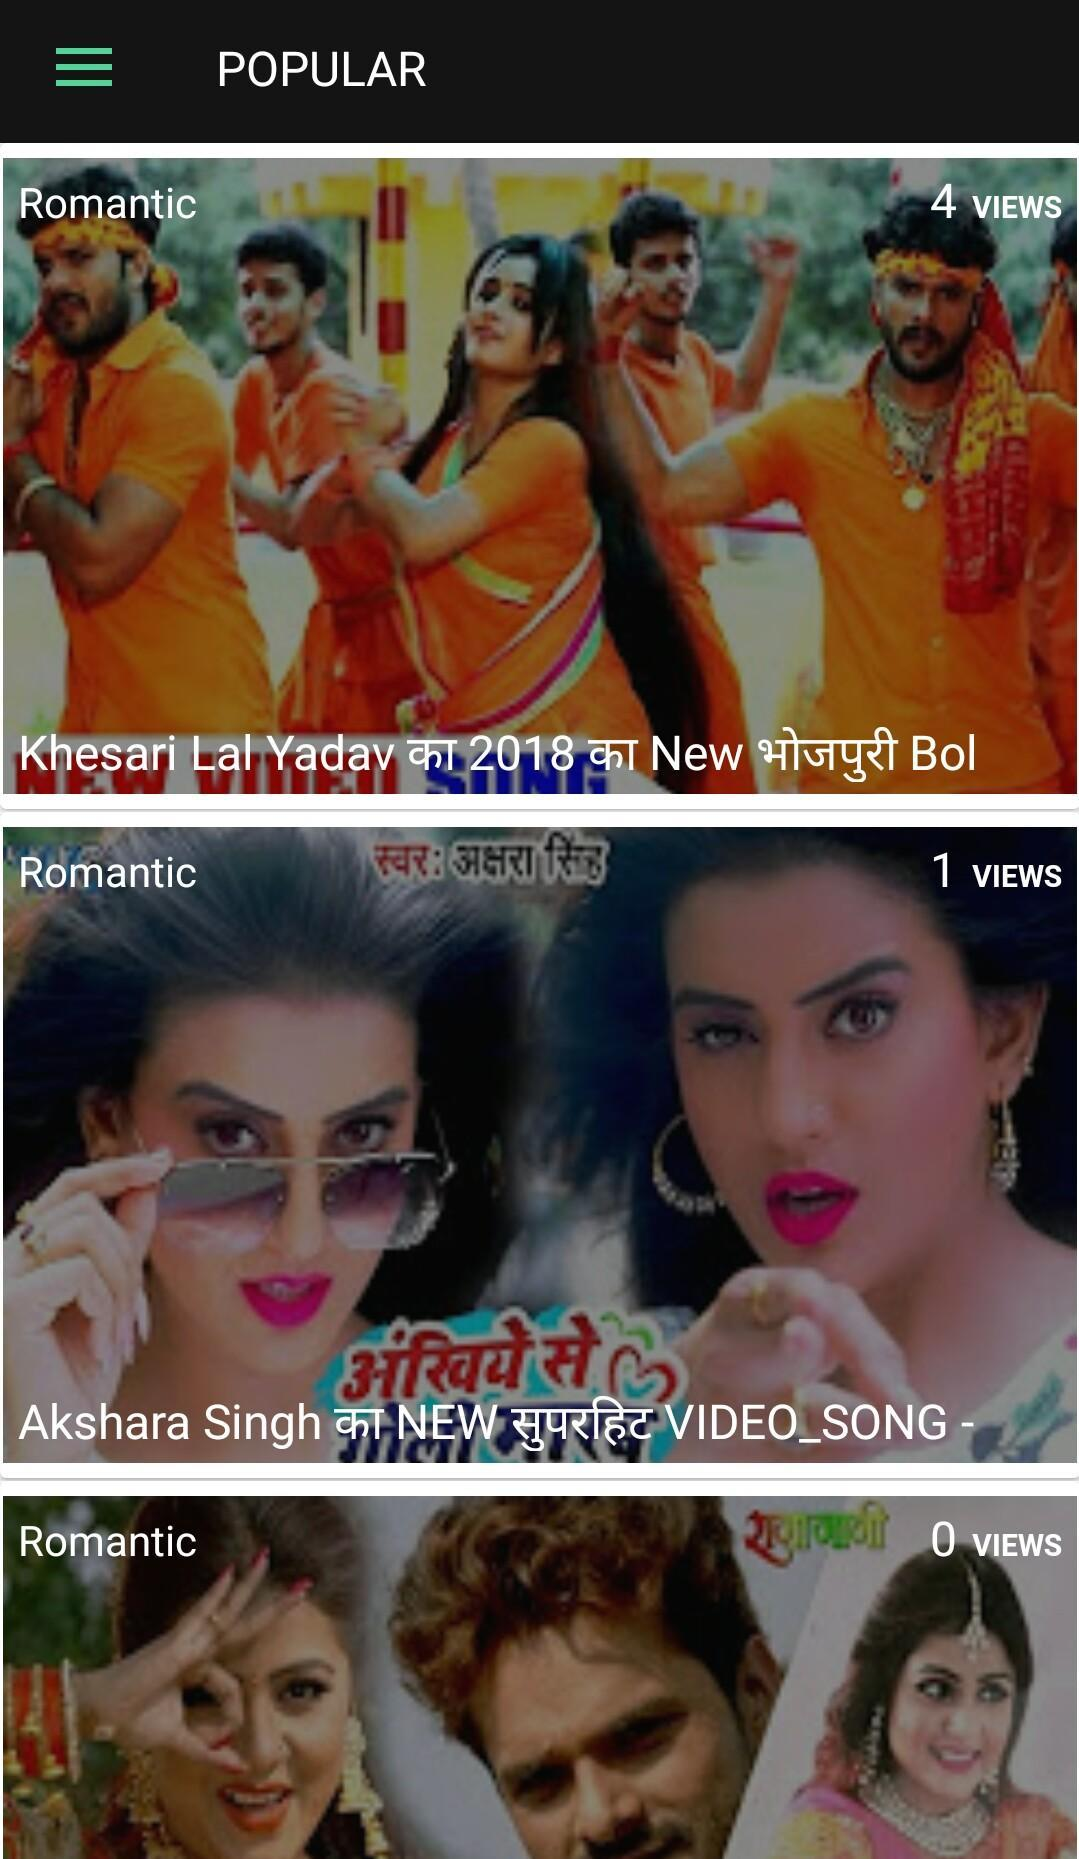 Bhojpuri Sexy Video Songs for Android - APK Download